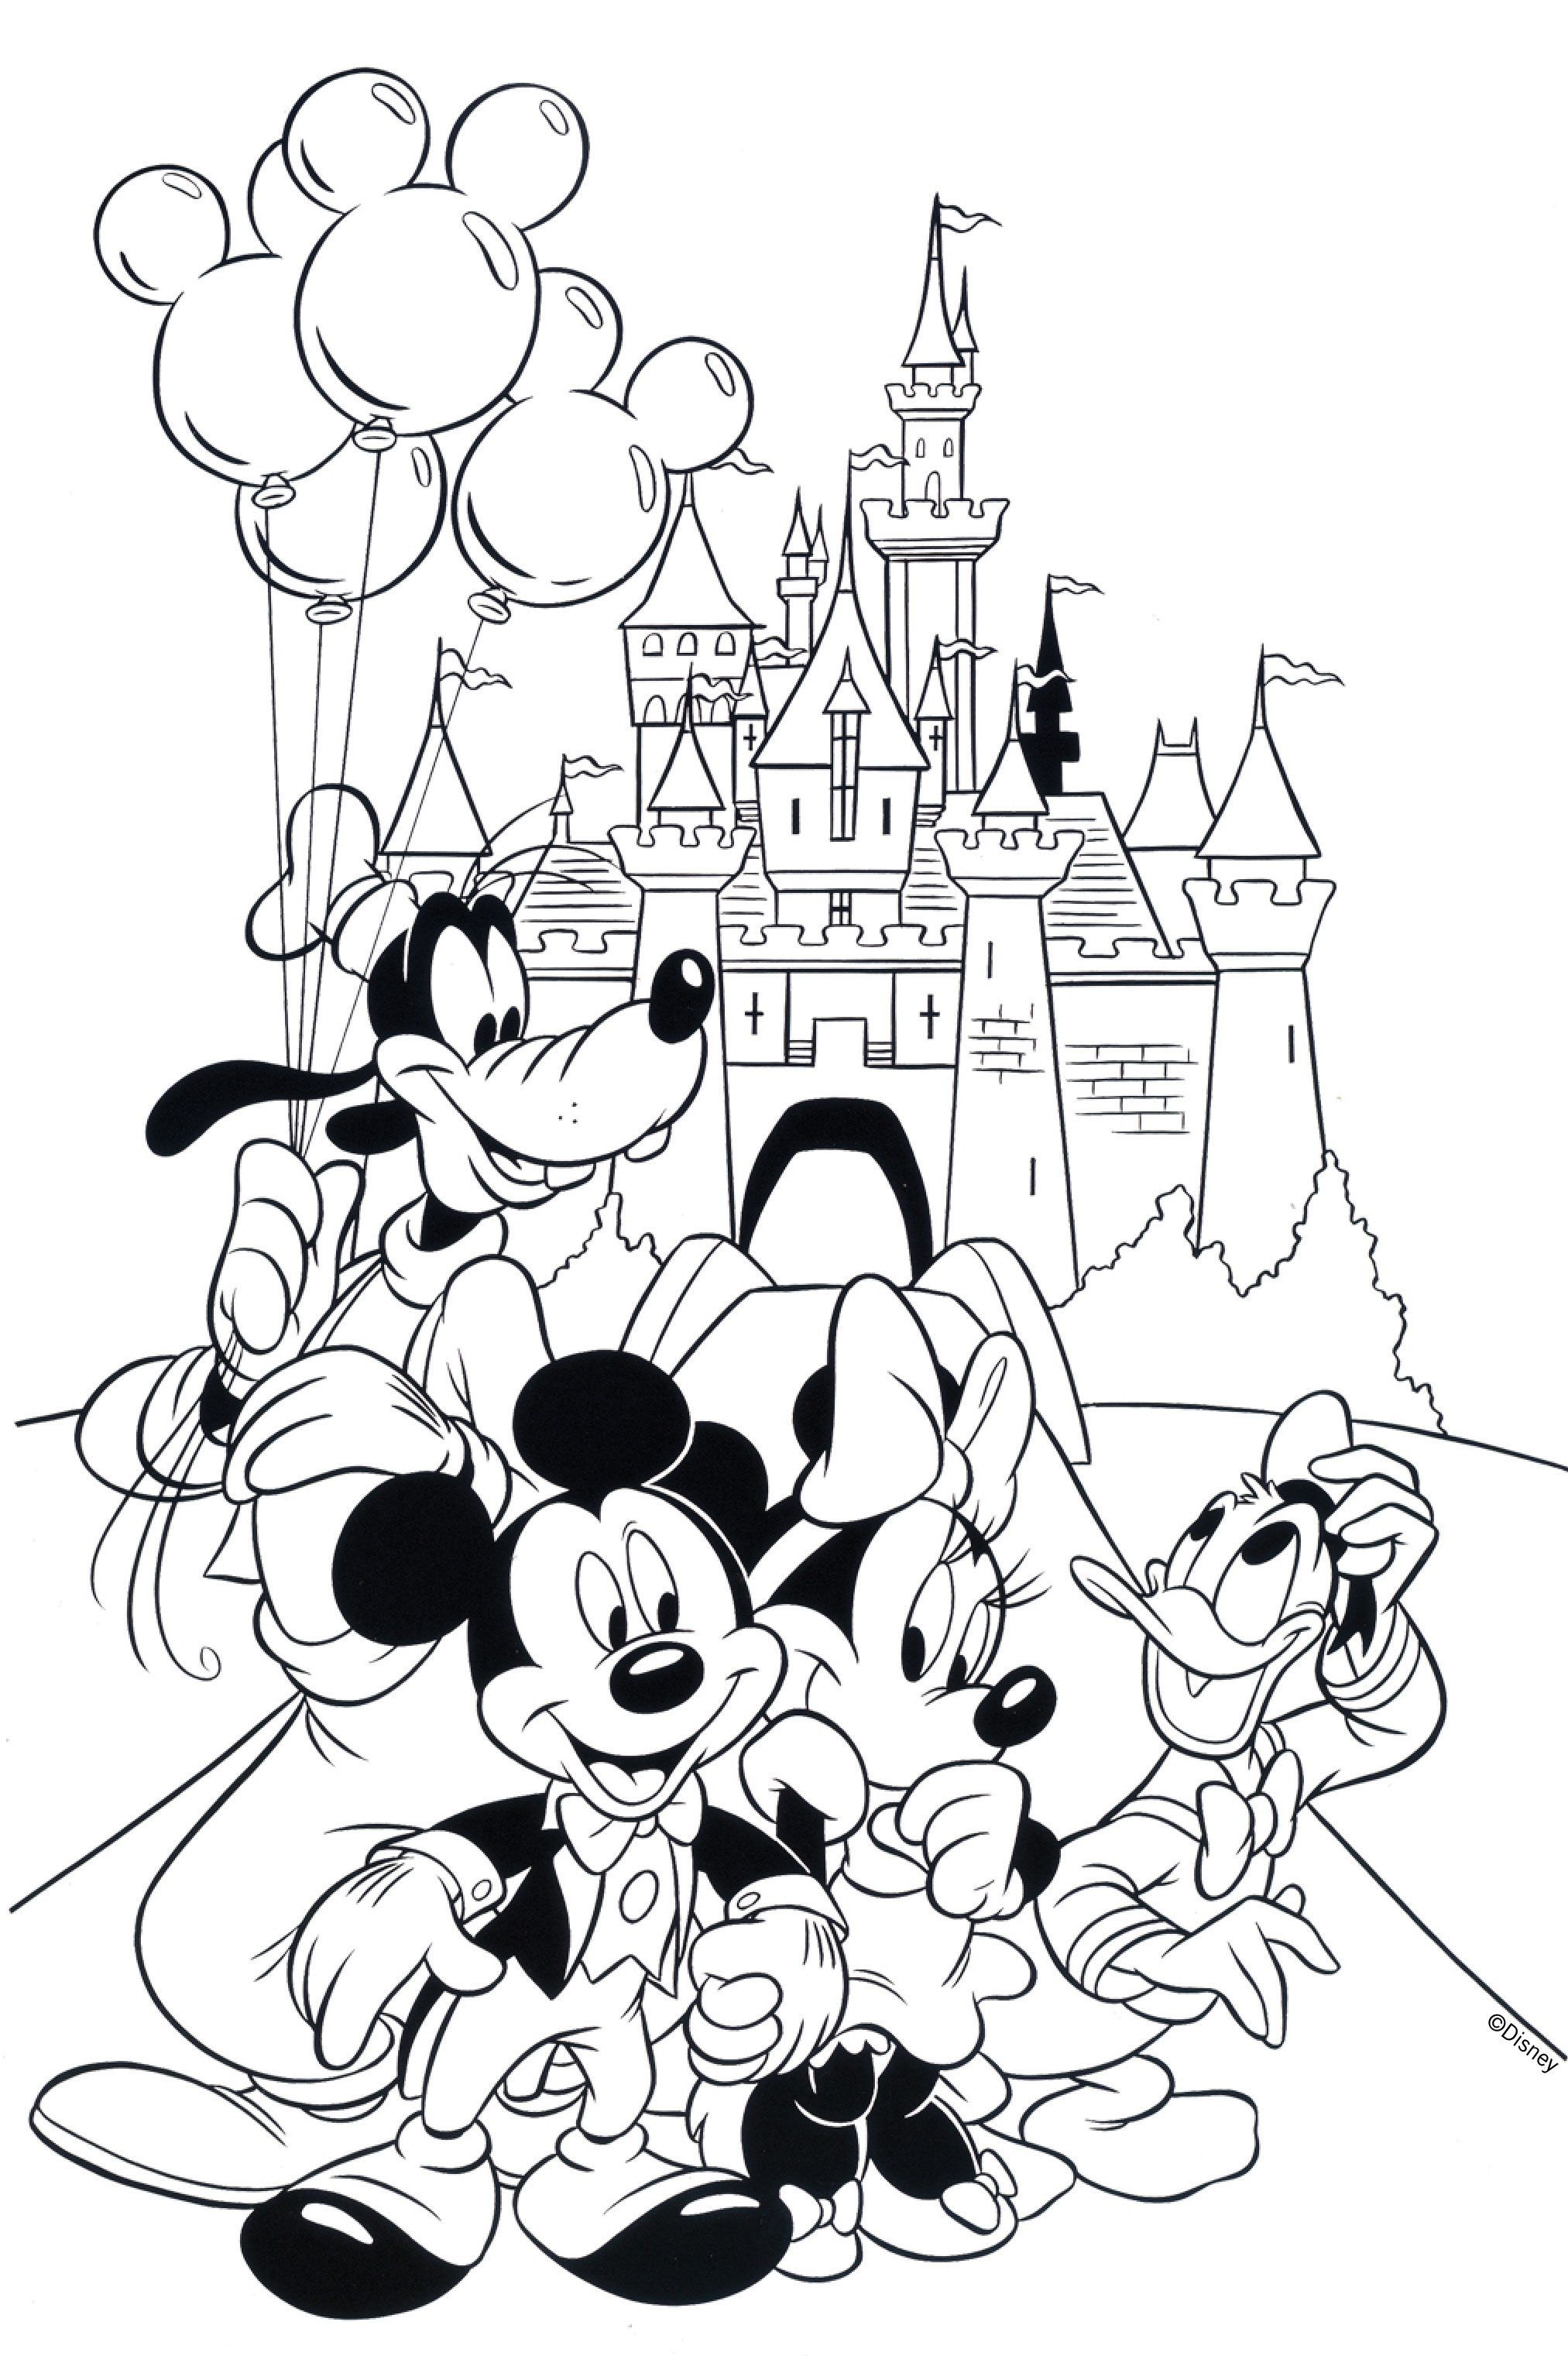 Disney Coloring Worksheets Disney Christmas Coloring Worksheets Disney Coloring Print Mickey Mouse Coloring Pages Disney Coloring Pages Mickey Coloring Pages